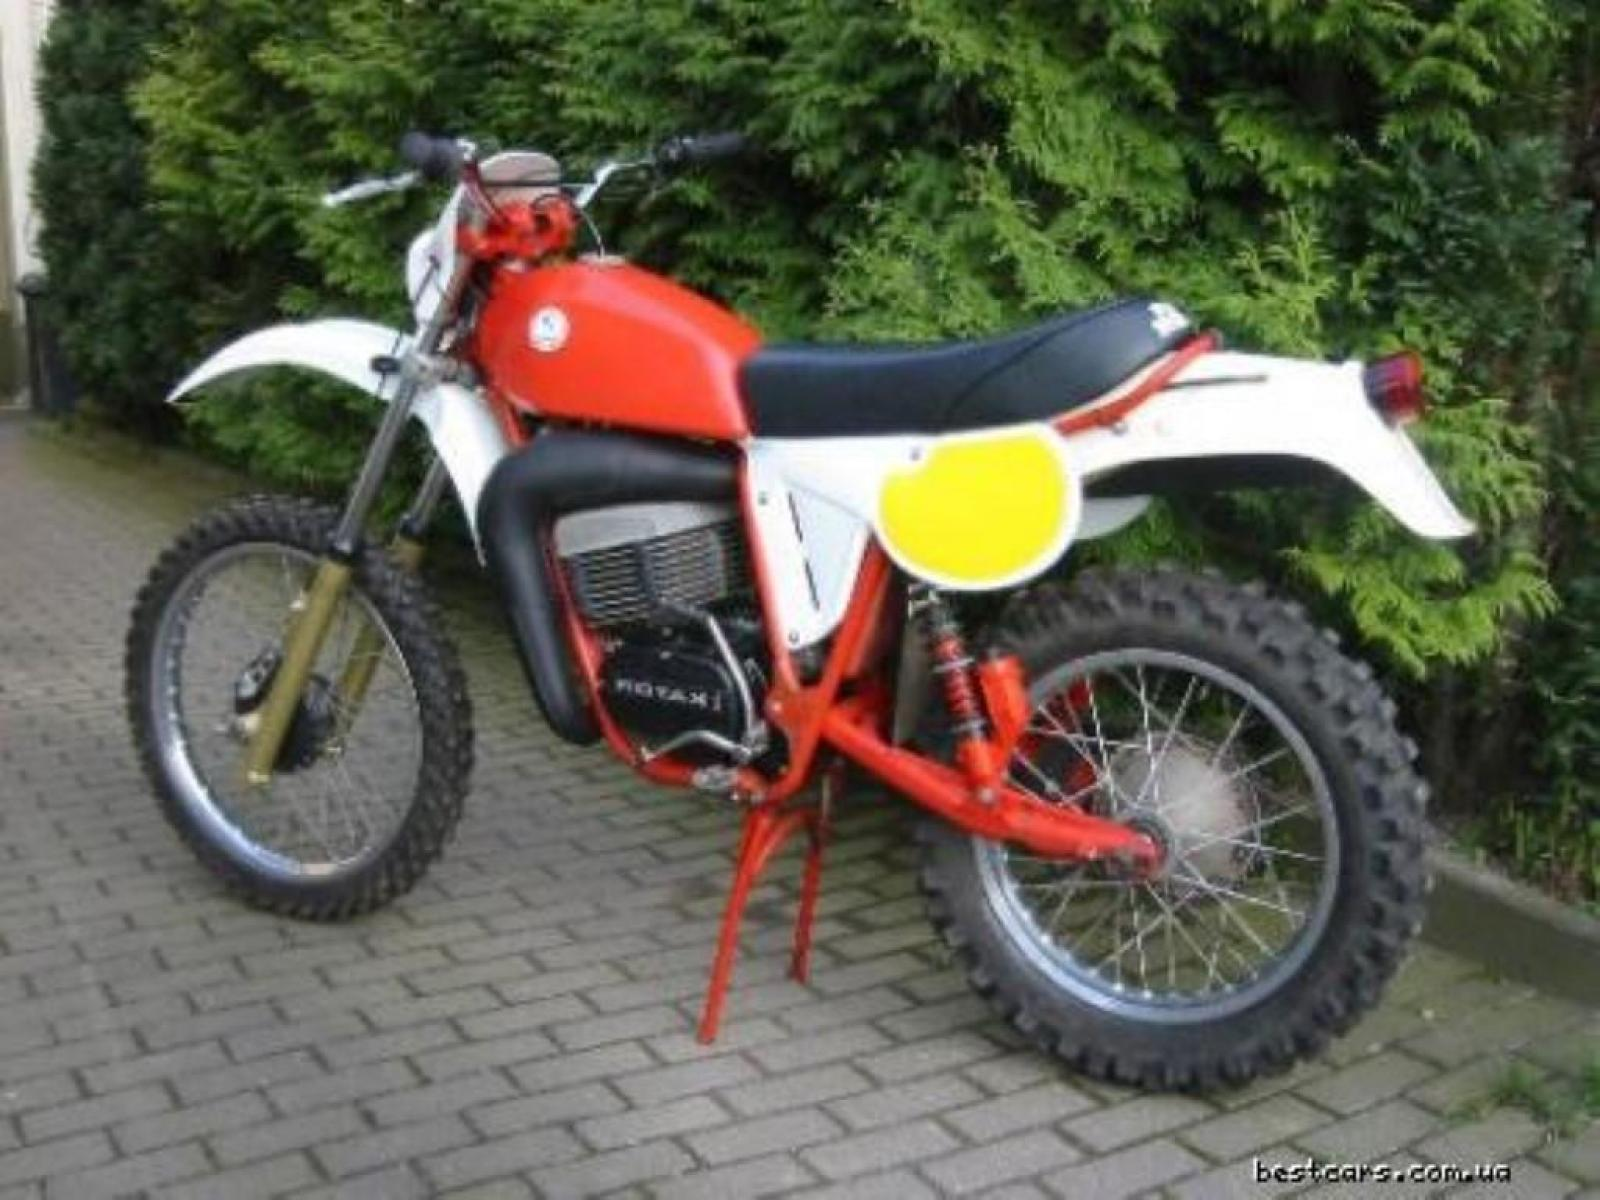 Puch GS 350 F 5 1985 images #121609